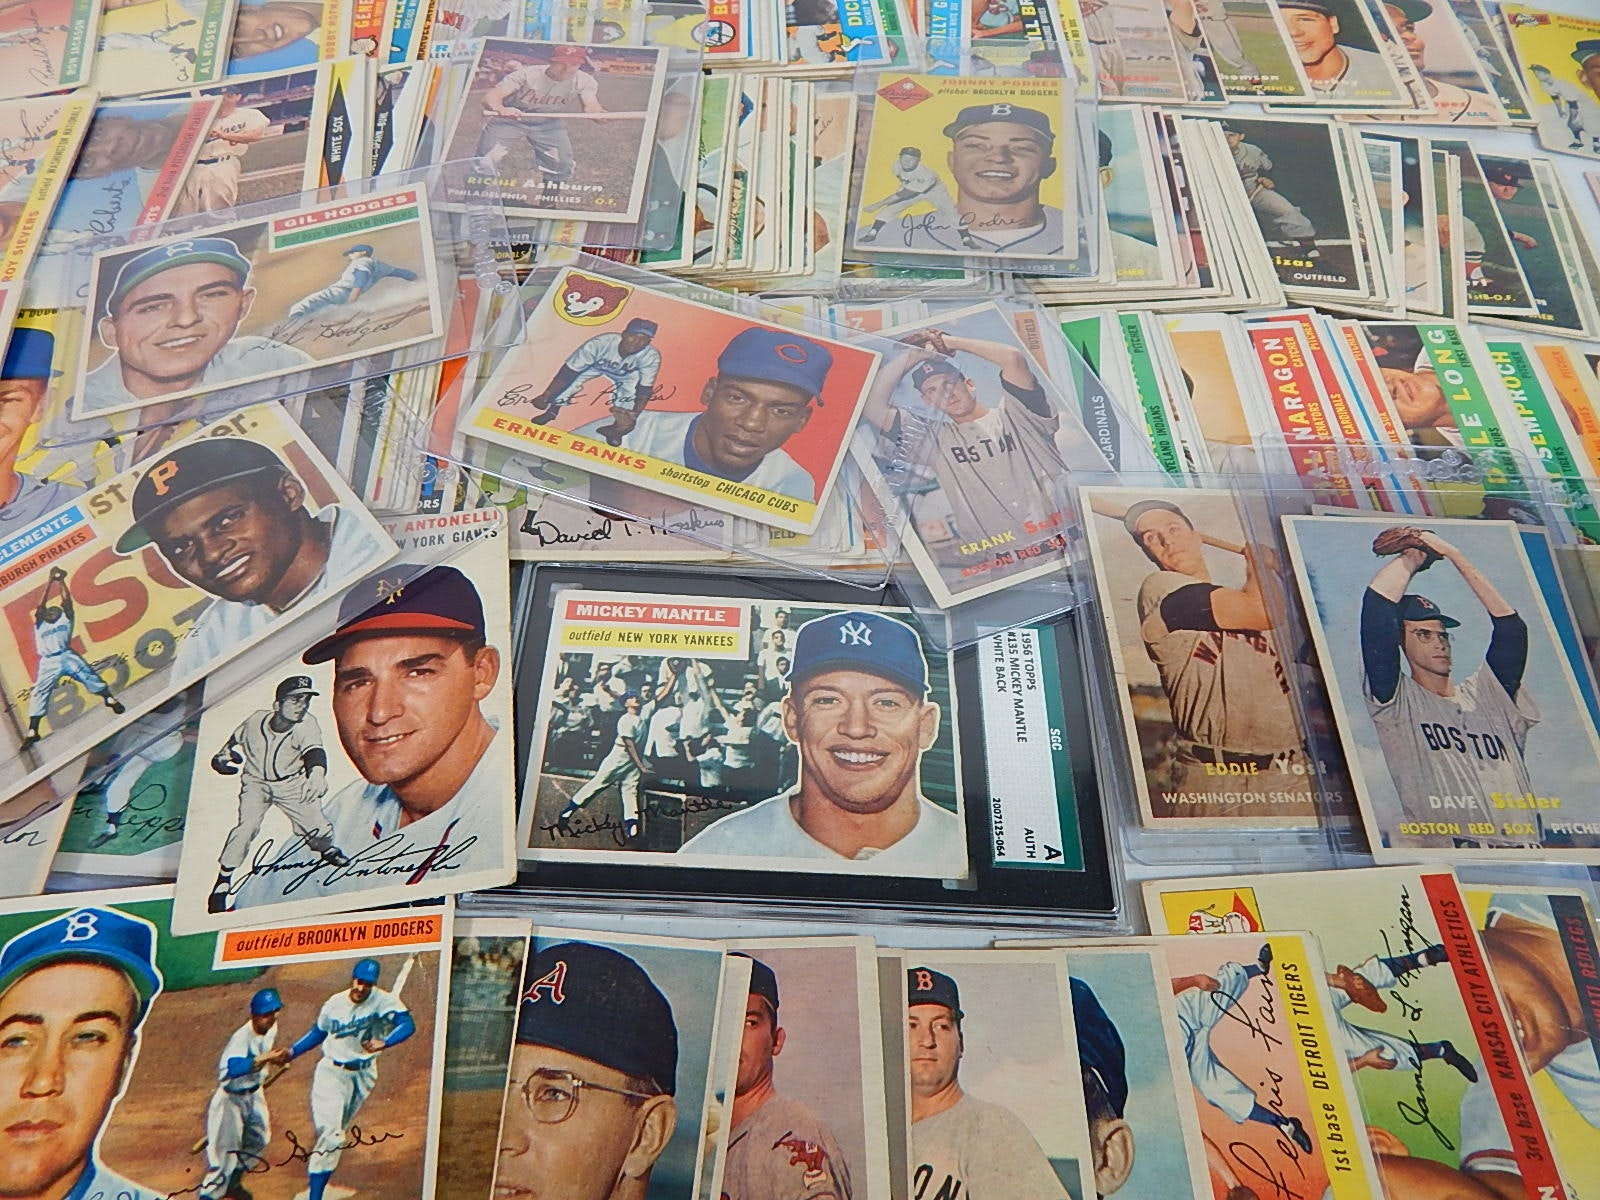 Large Topps Baseball Card Collection from 1953 to 1960 with Mantle, Banks